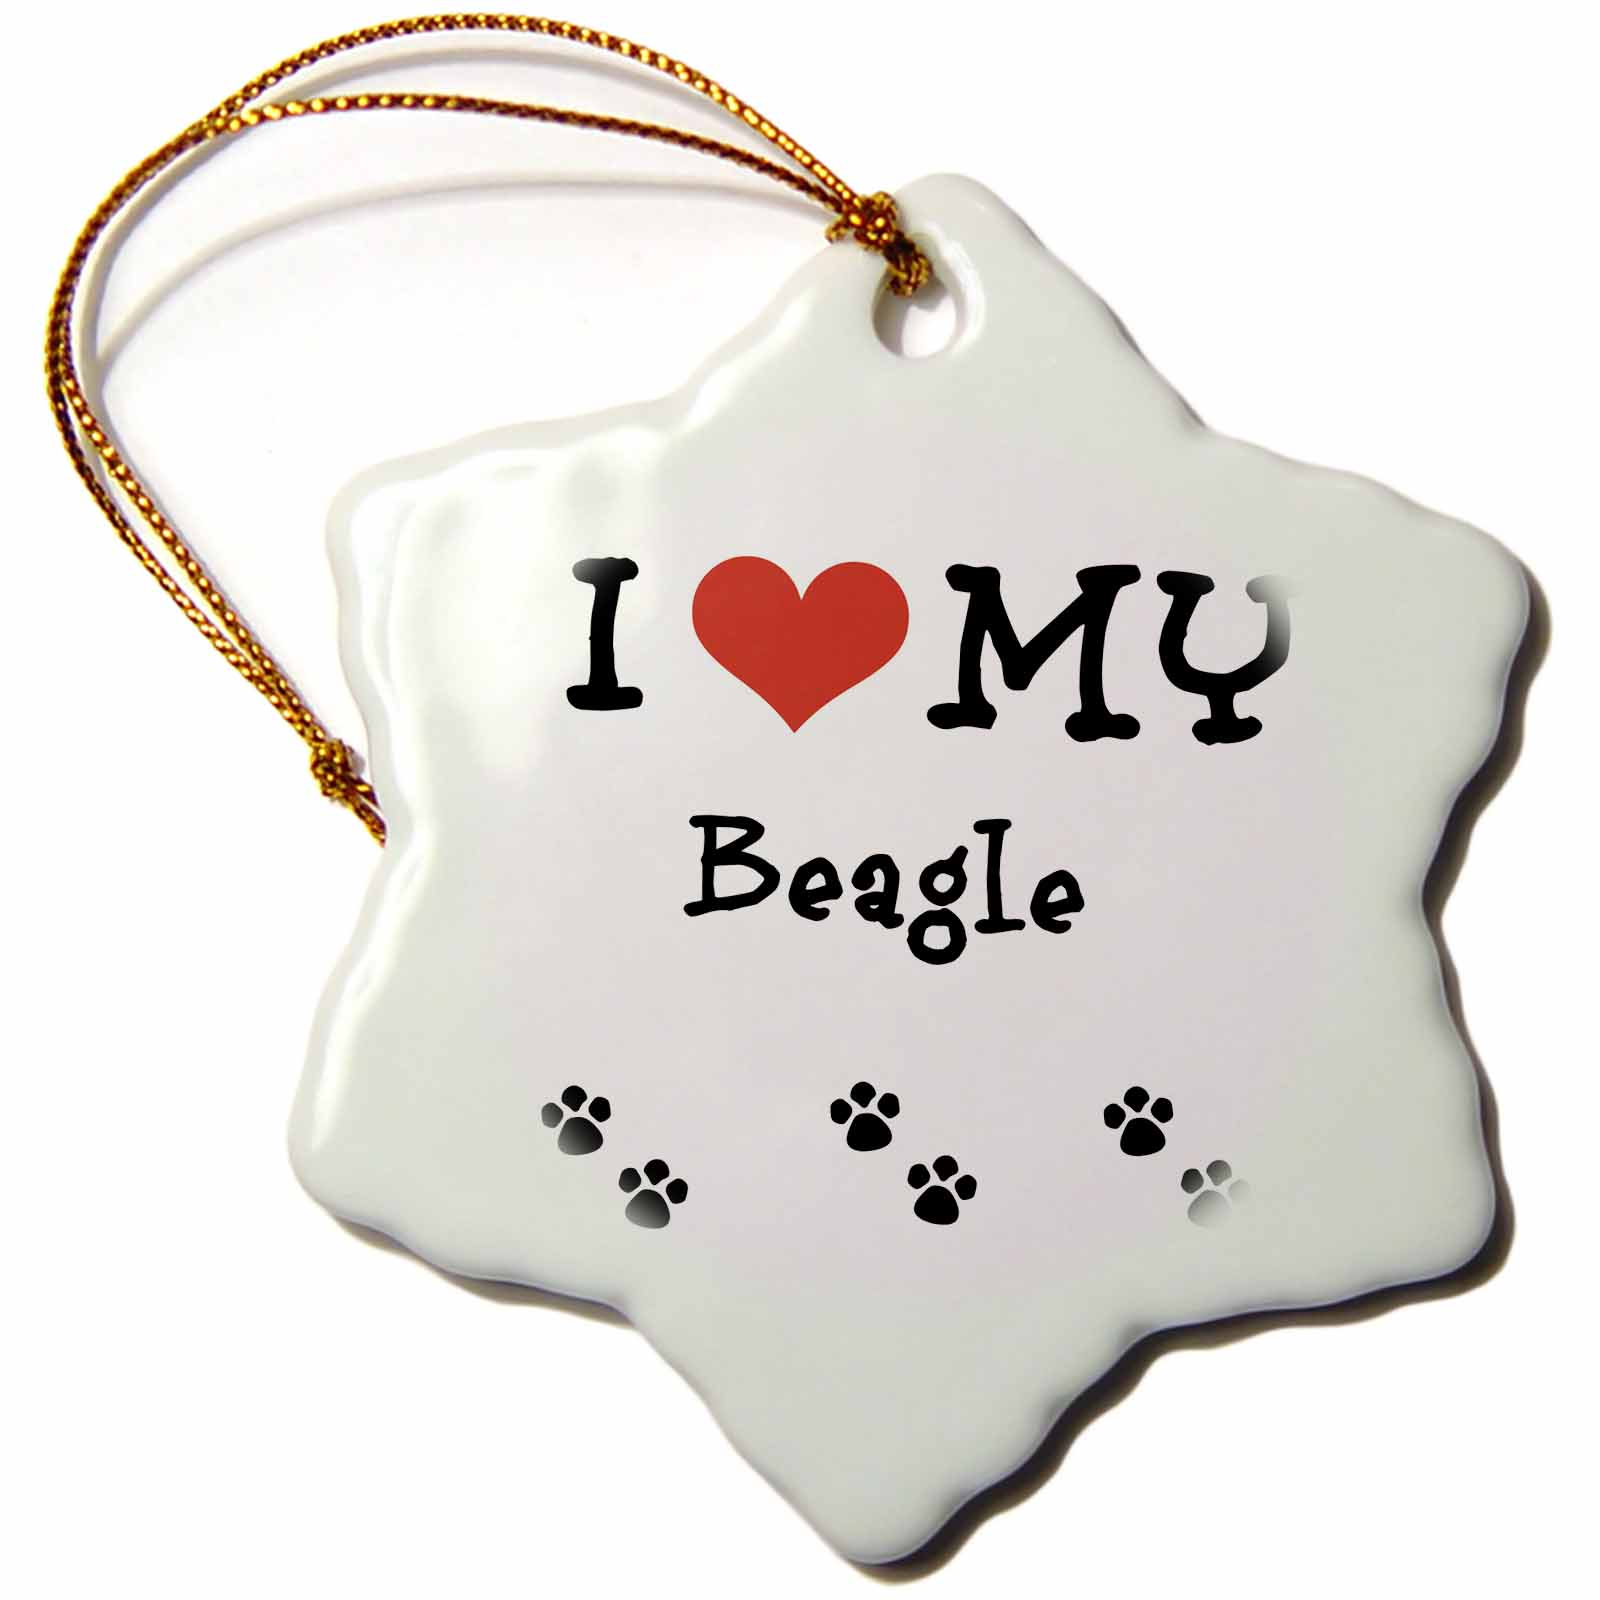 3dRose I Love My - Beagle, Snowflake Ornament, Porcelain, 3-inch